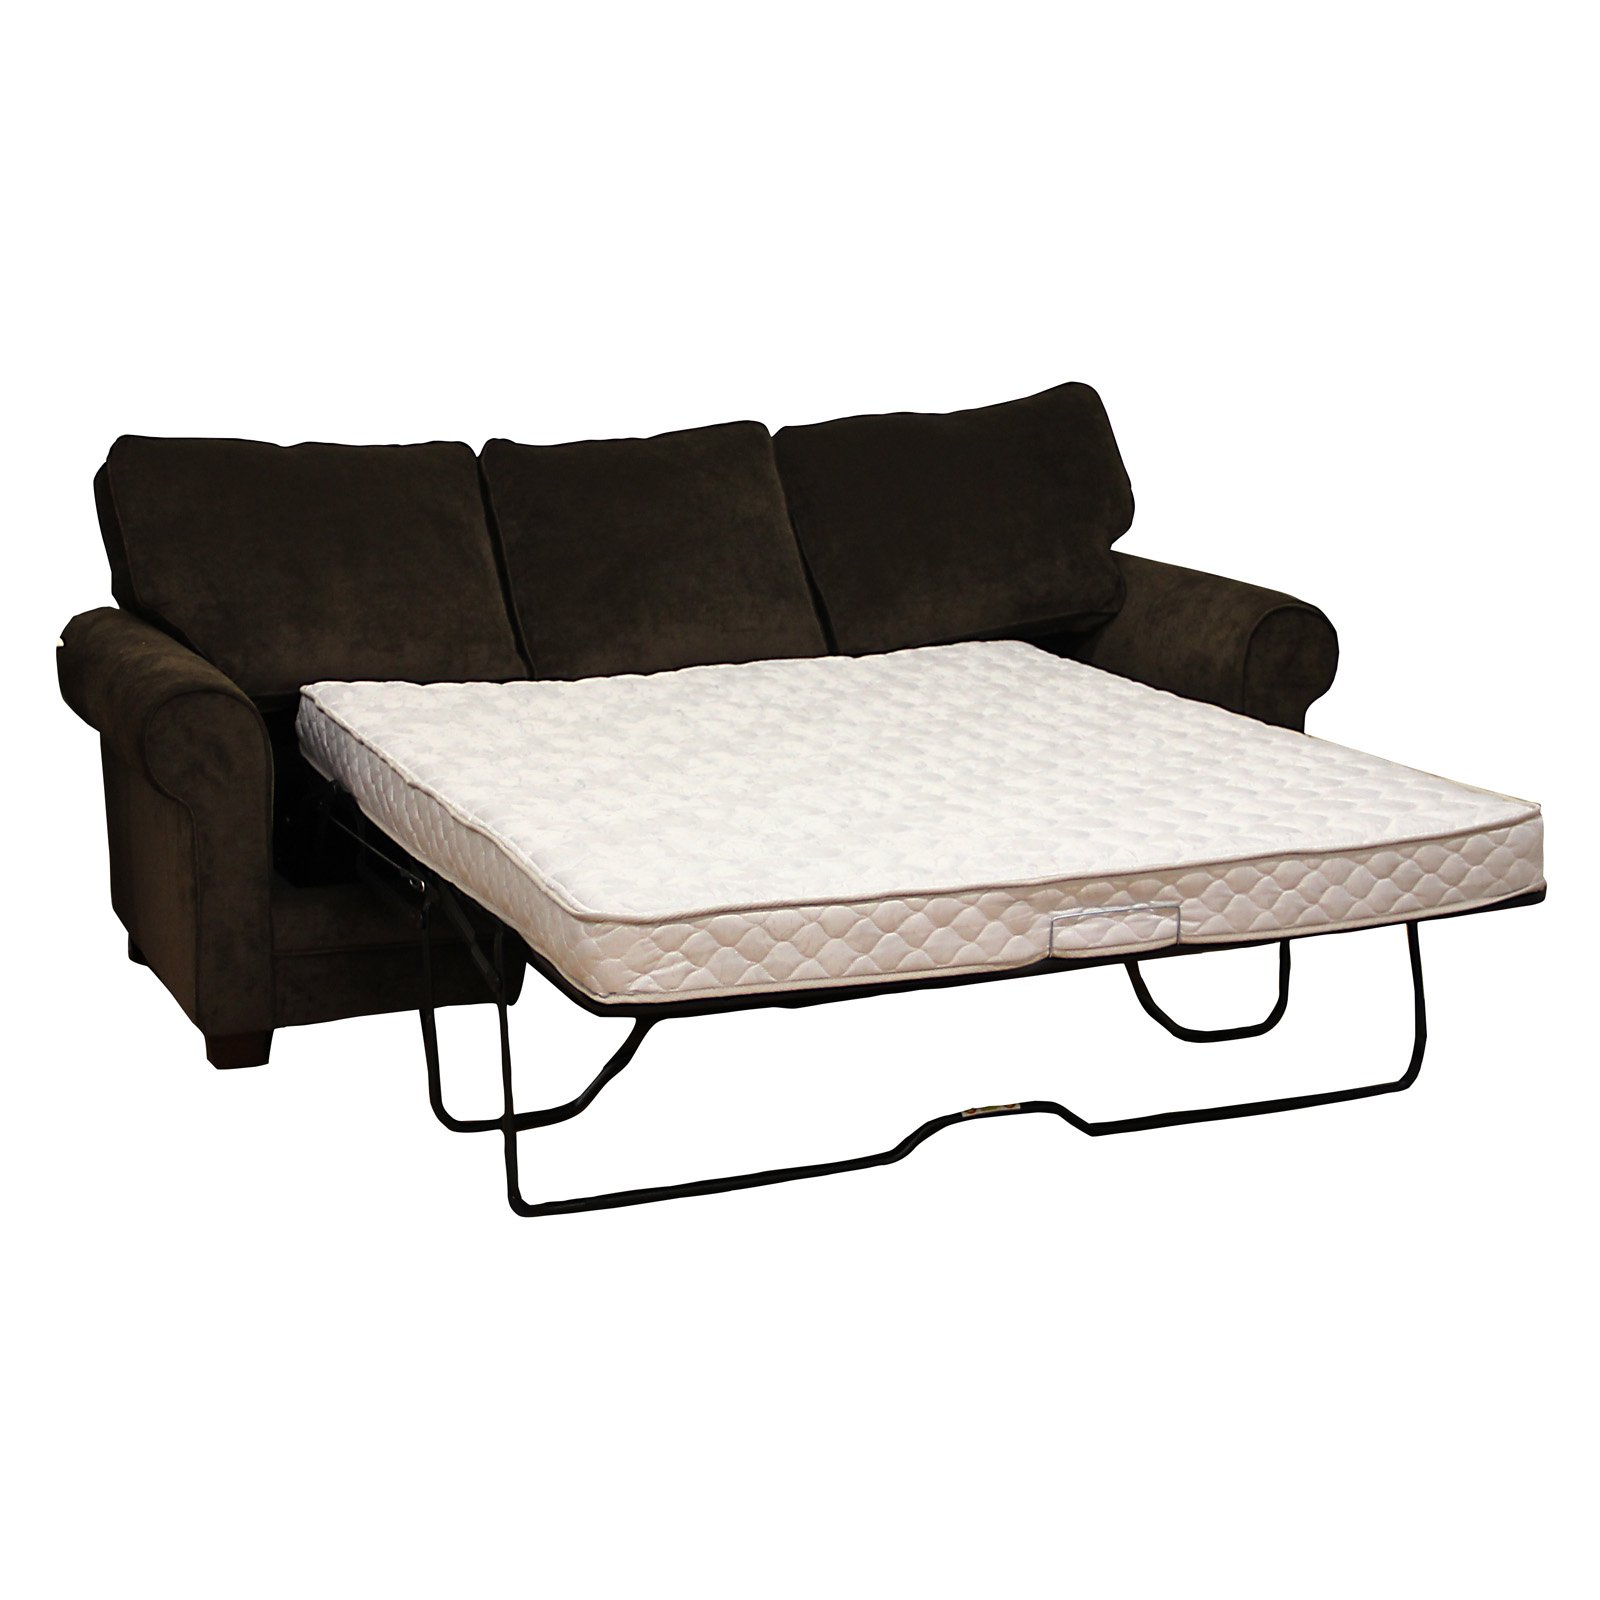 mattress for sleeper sofa. Mainstays 57\ Mattress For Sleeper Sofa